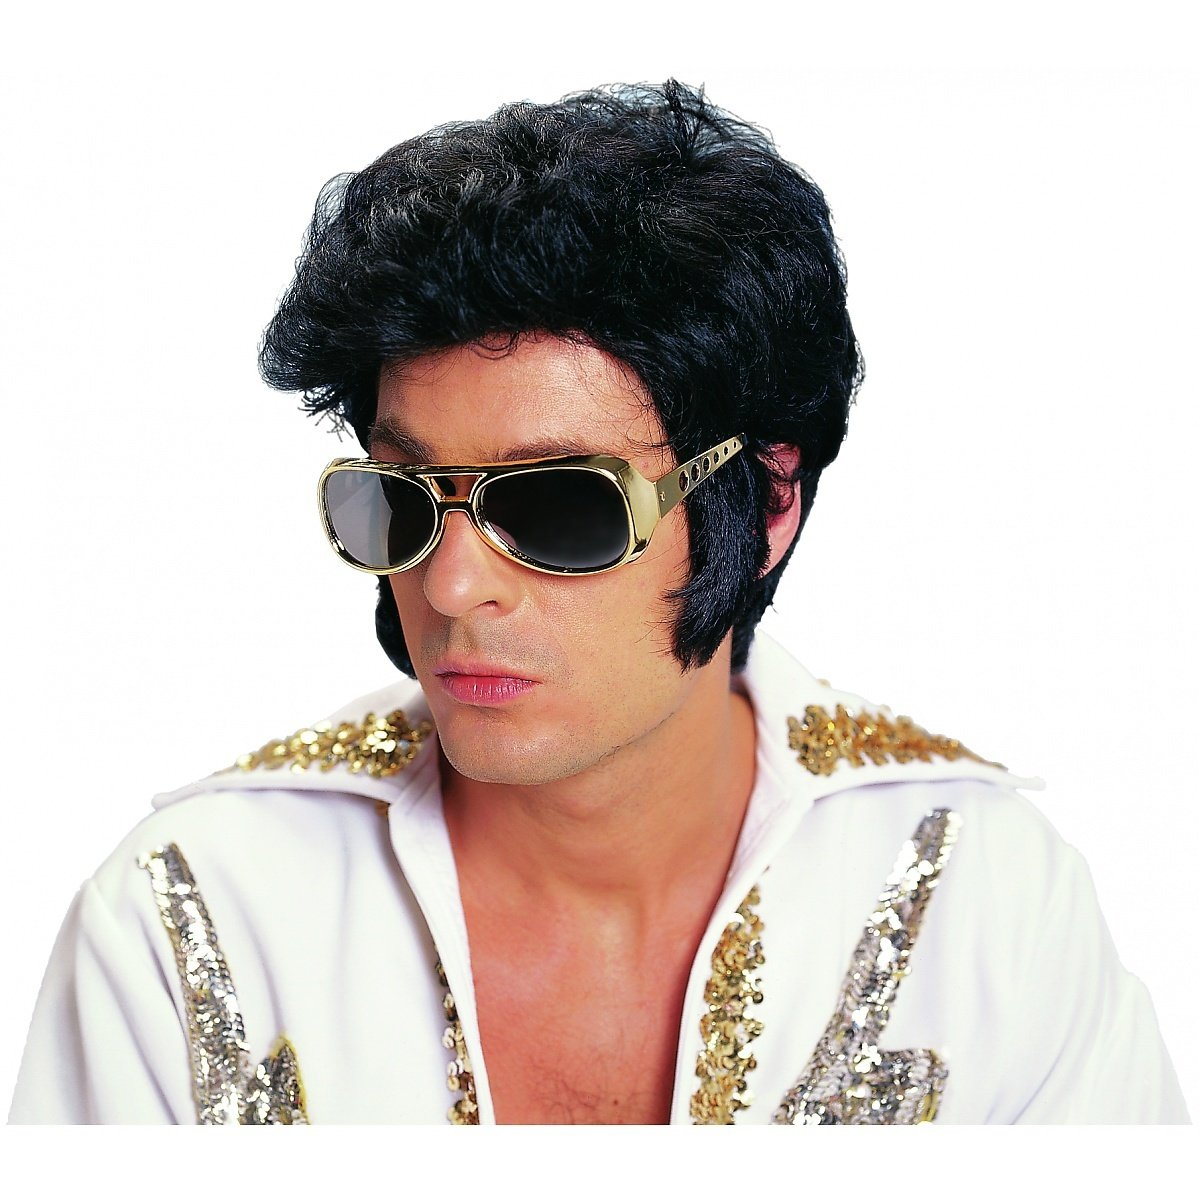 Rock N' Roll Deluxe Black Wig Costume Accessory